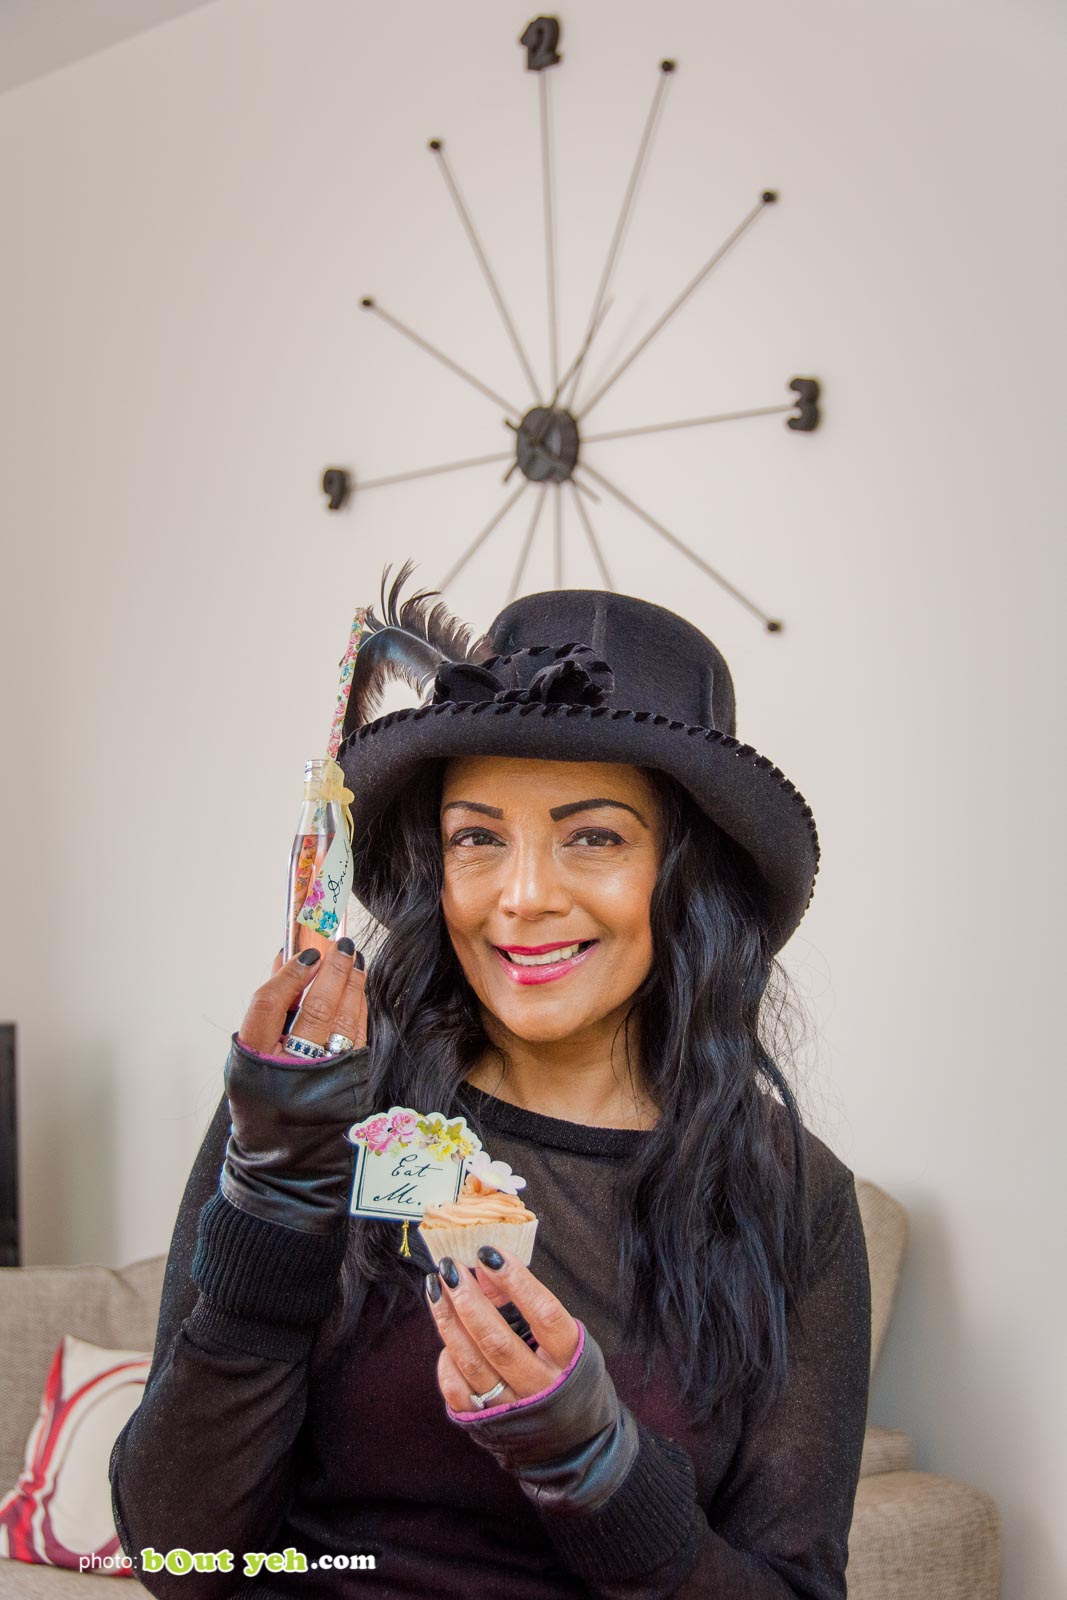 Winner of Bout Yeh Brexit Mad Hatters Tea Party competition - photo 9286 by Bout Yeh photographers Belfast